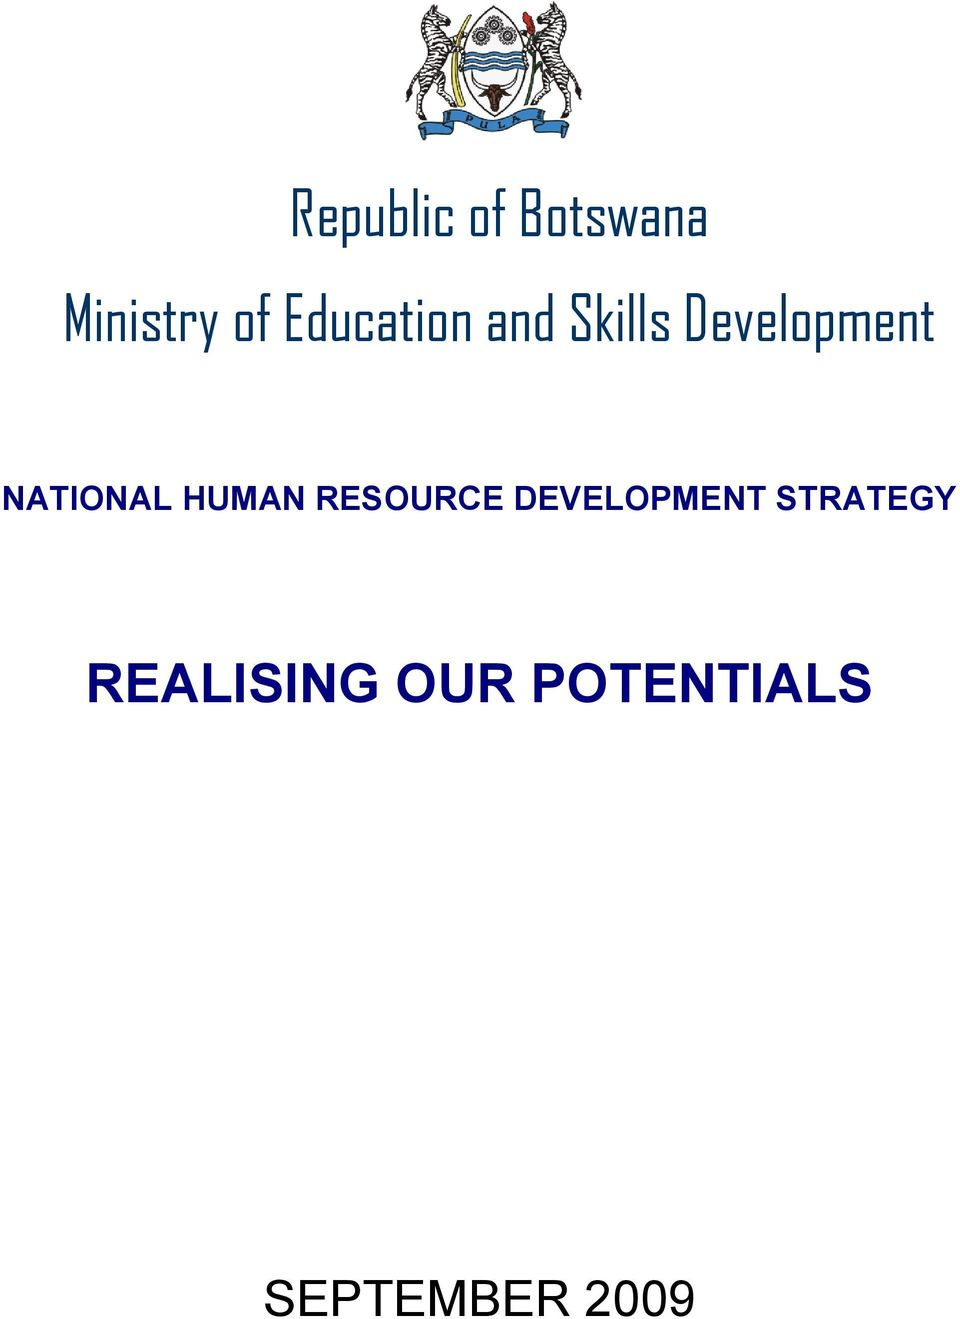 NATIONAL HUMAN RESOURCE DEVELOPMENT